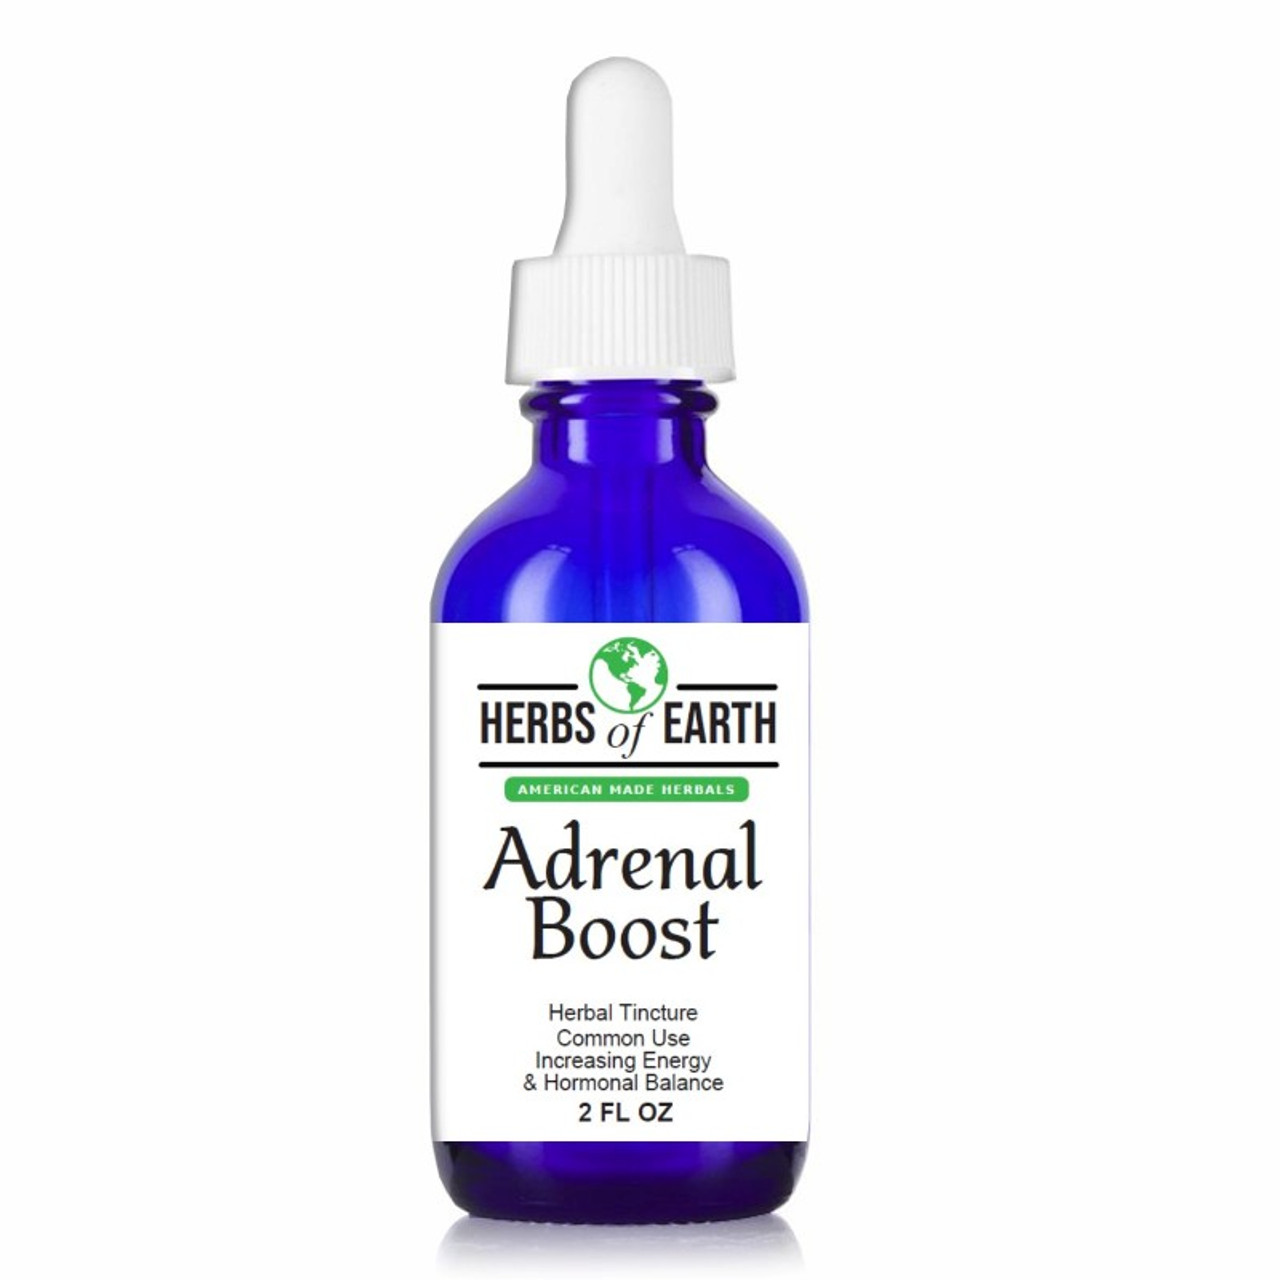 Adrenal Boost by Herbs of Earth